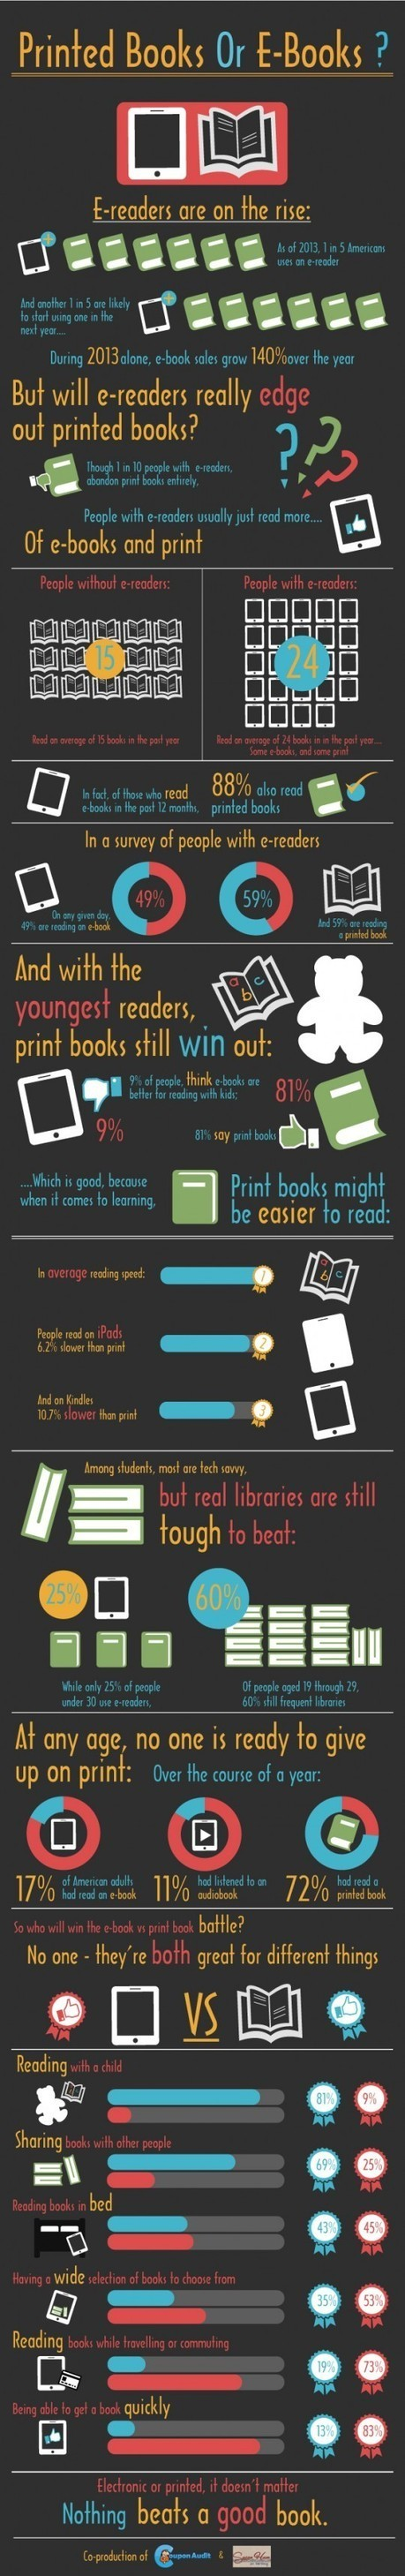 "Printed Books or E-Books? Either way ""nothing beats a good book"" - Book Patrol 